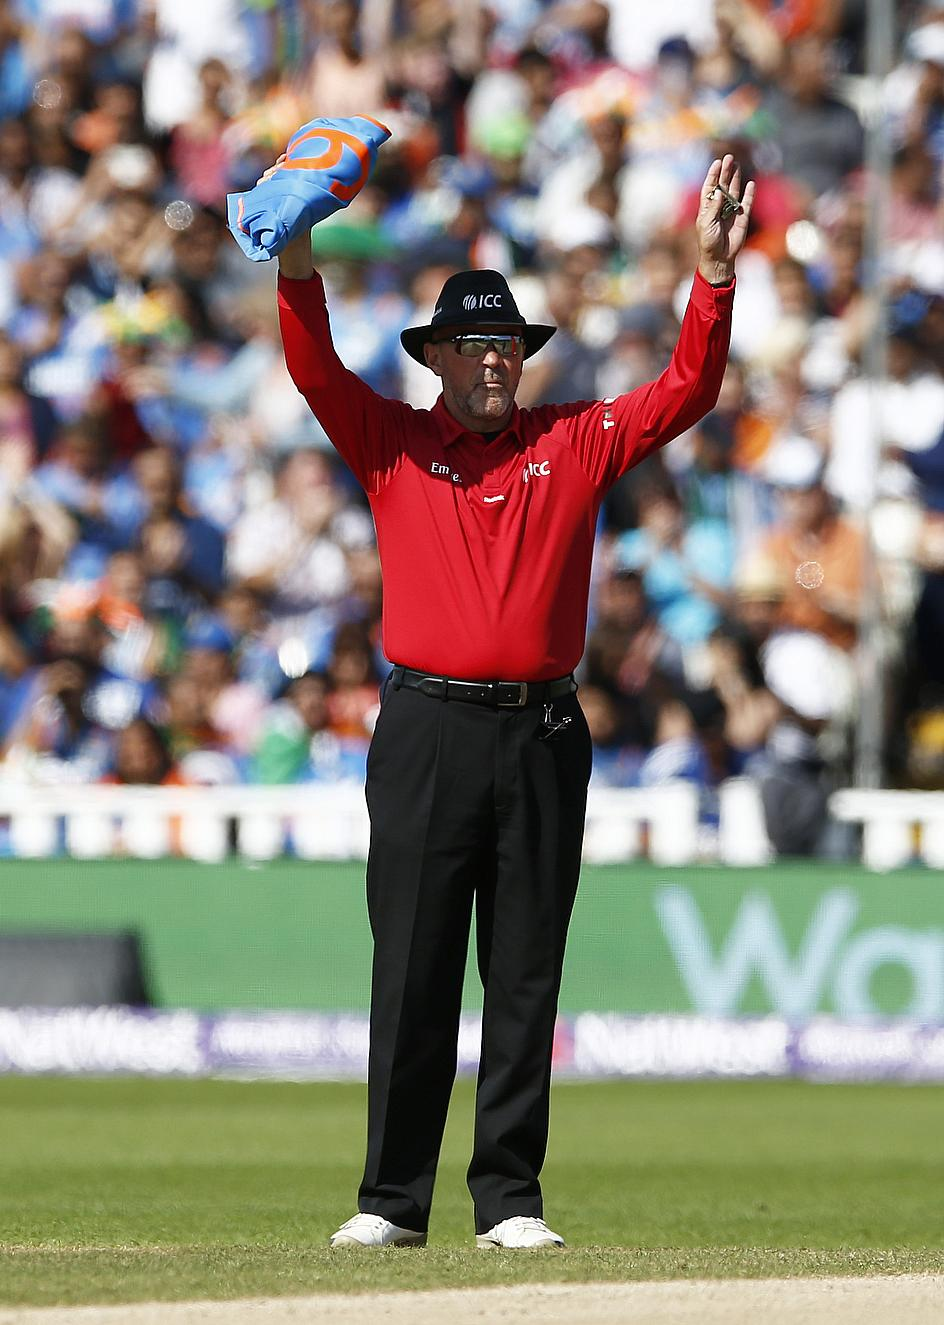 Icc To Air Umpire Communications